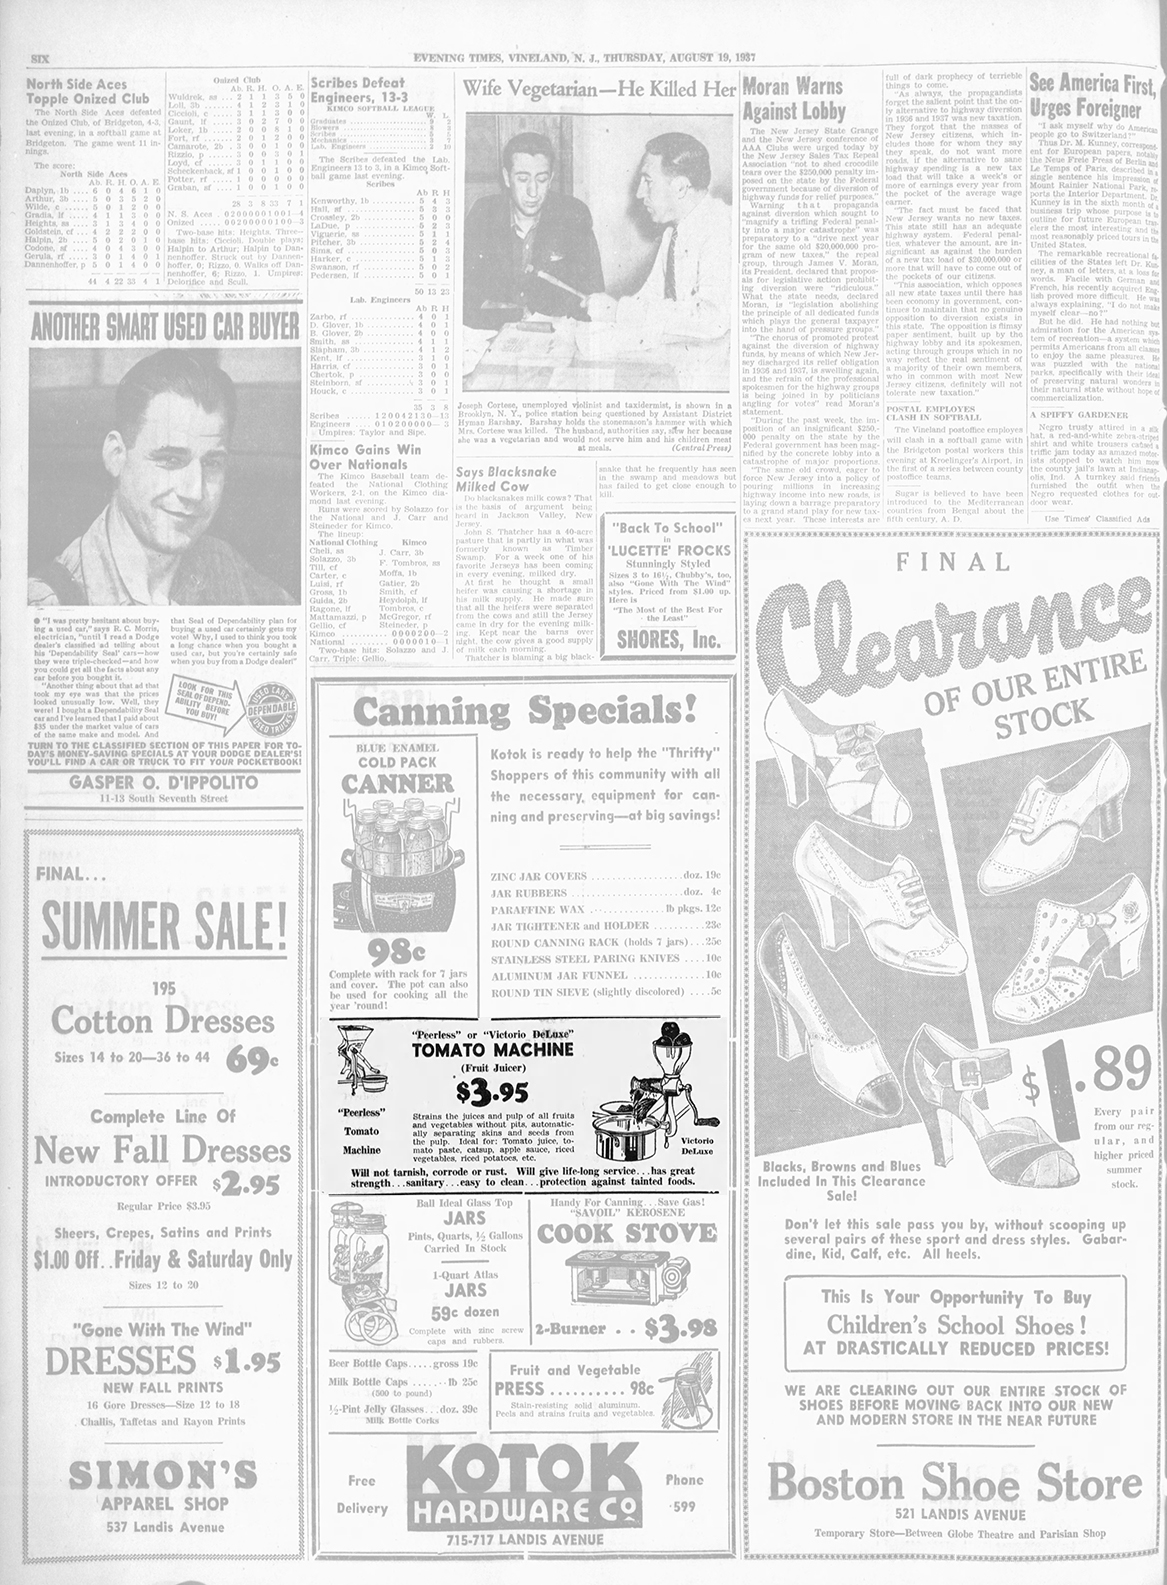 The Daily Journal Thursday August 19 1937